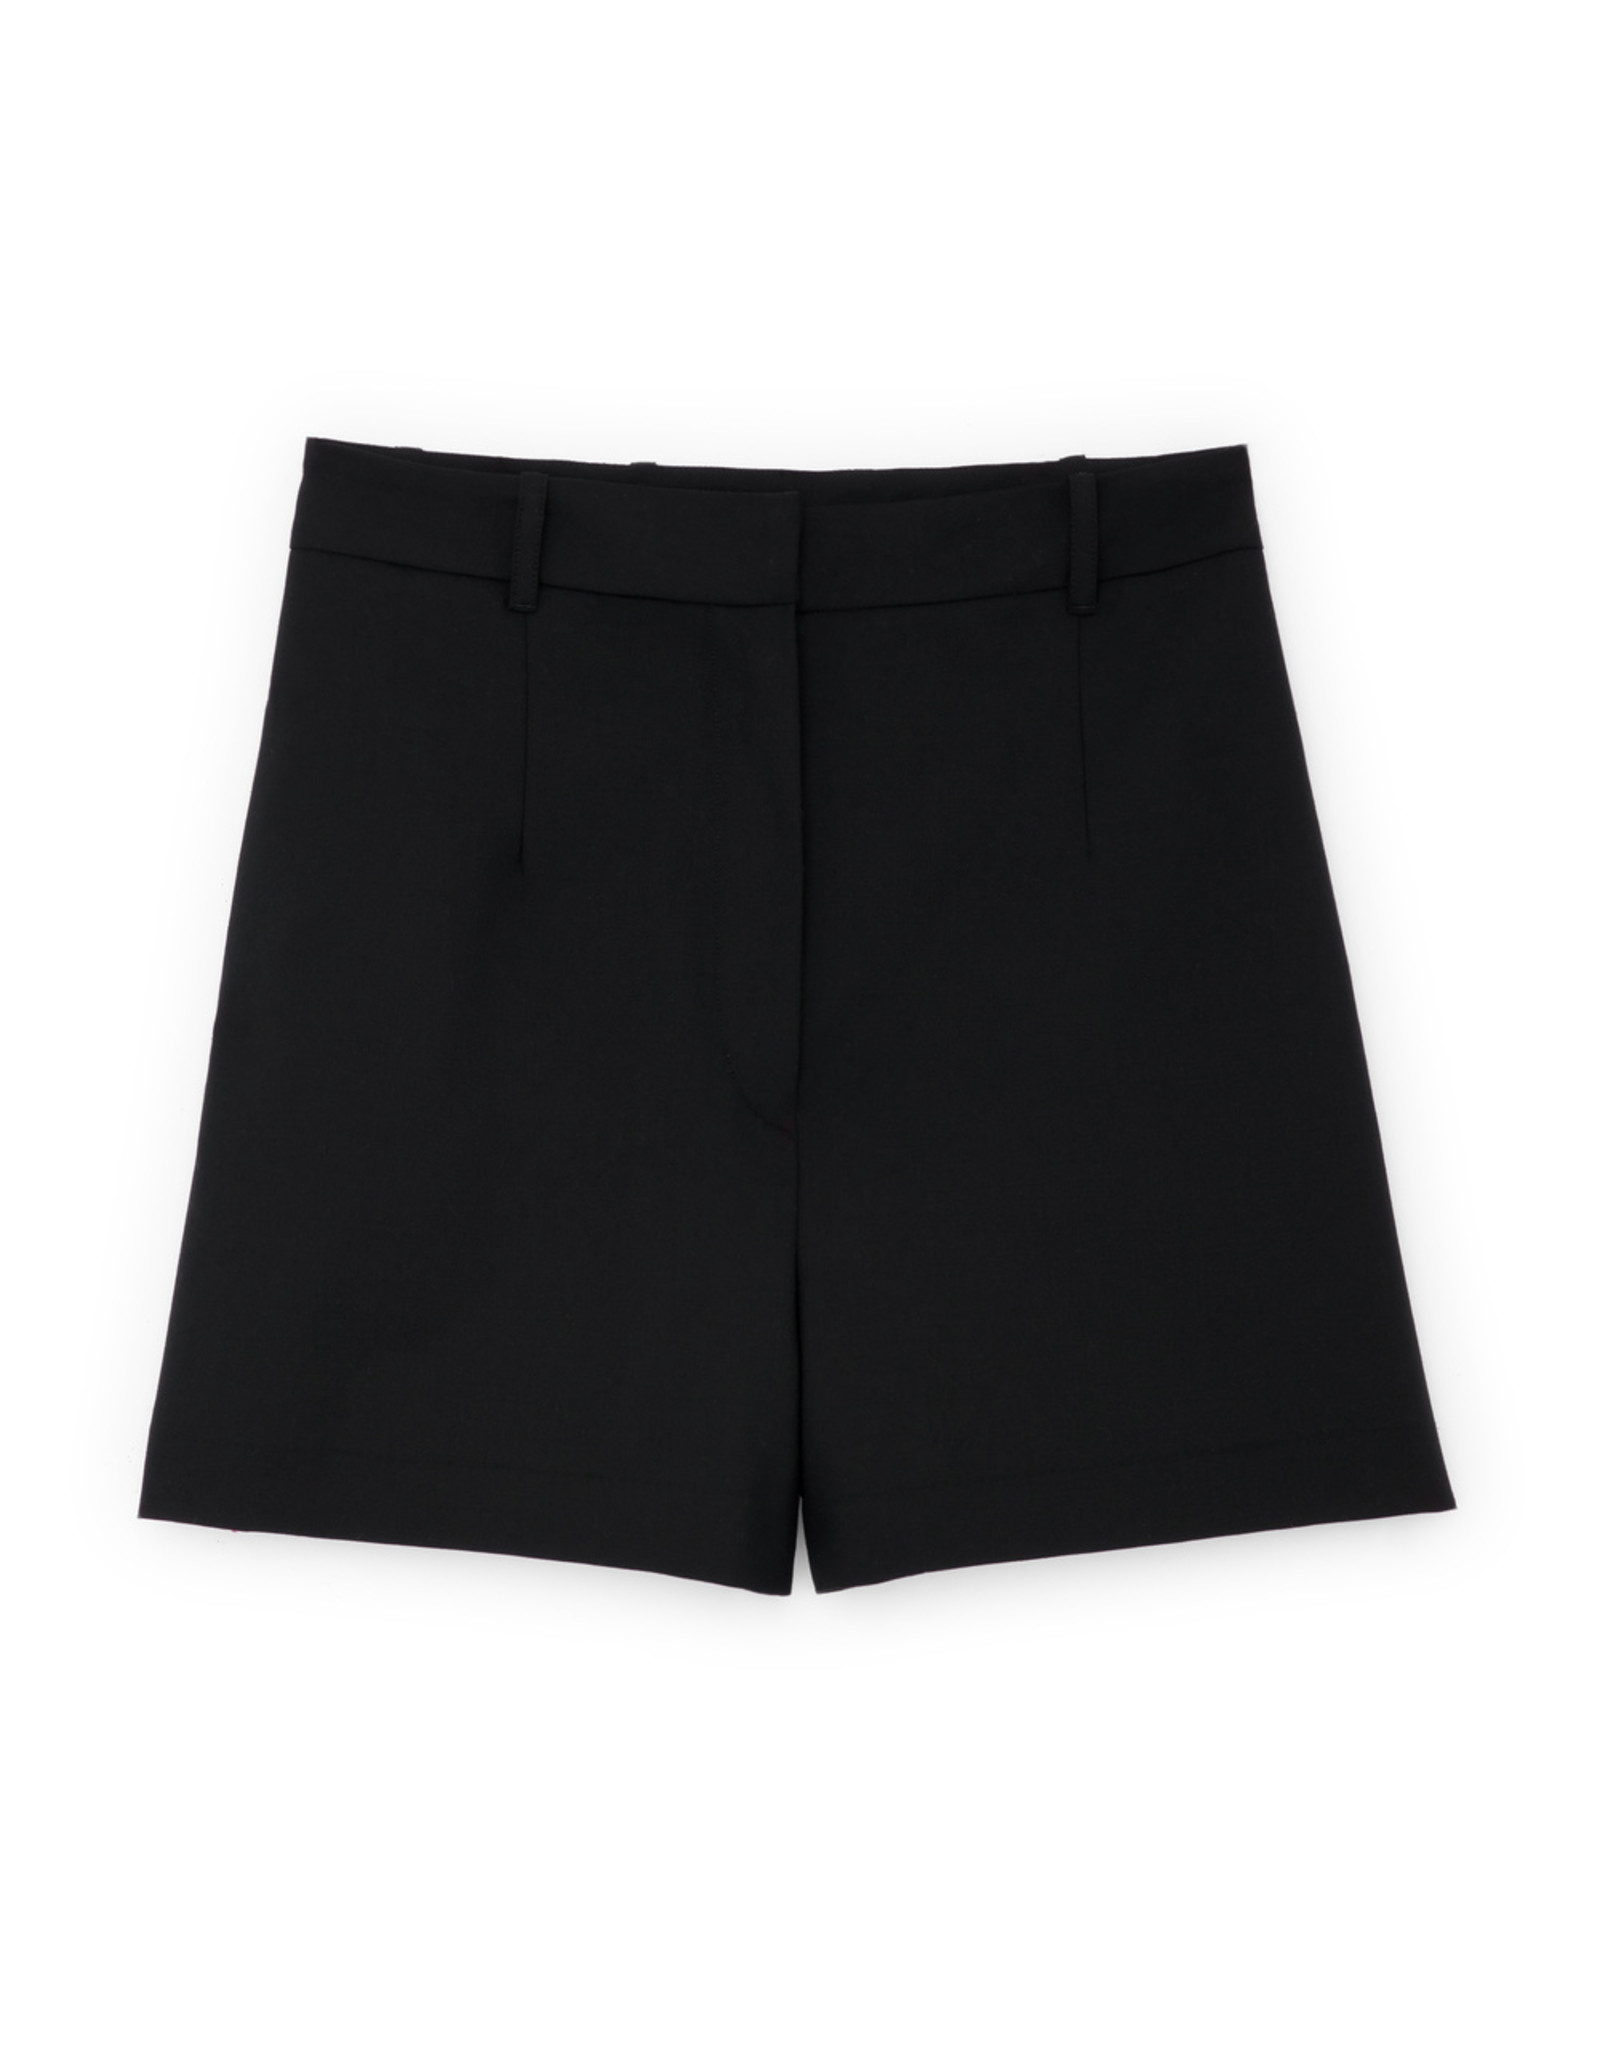 G. Label G. Label Anthony Tailored Shorts (Color: Black, Size: 4)